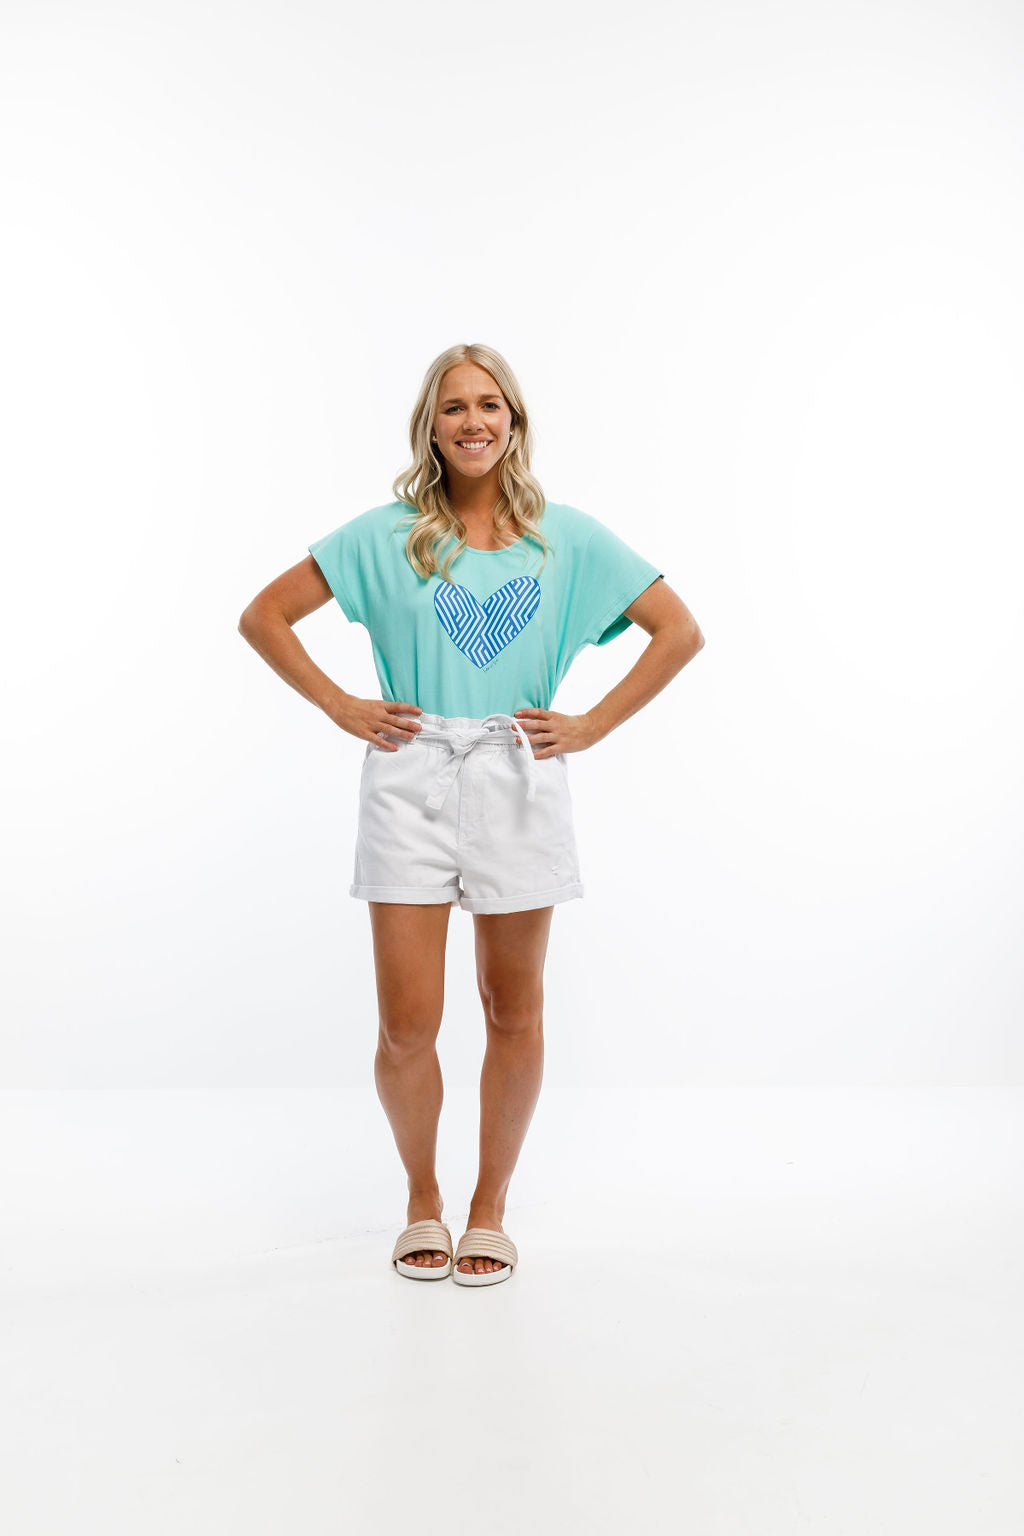 JACK TEE - Mint Blue with Blue Carnival Heart Print